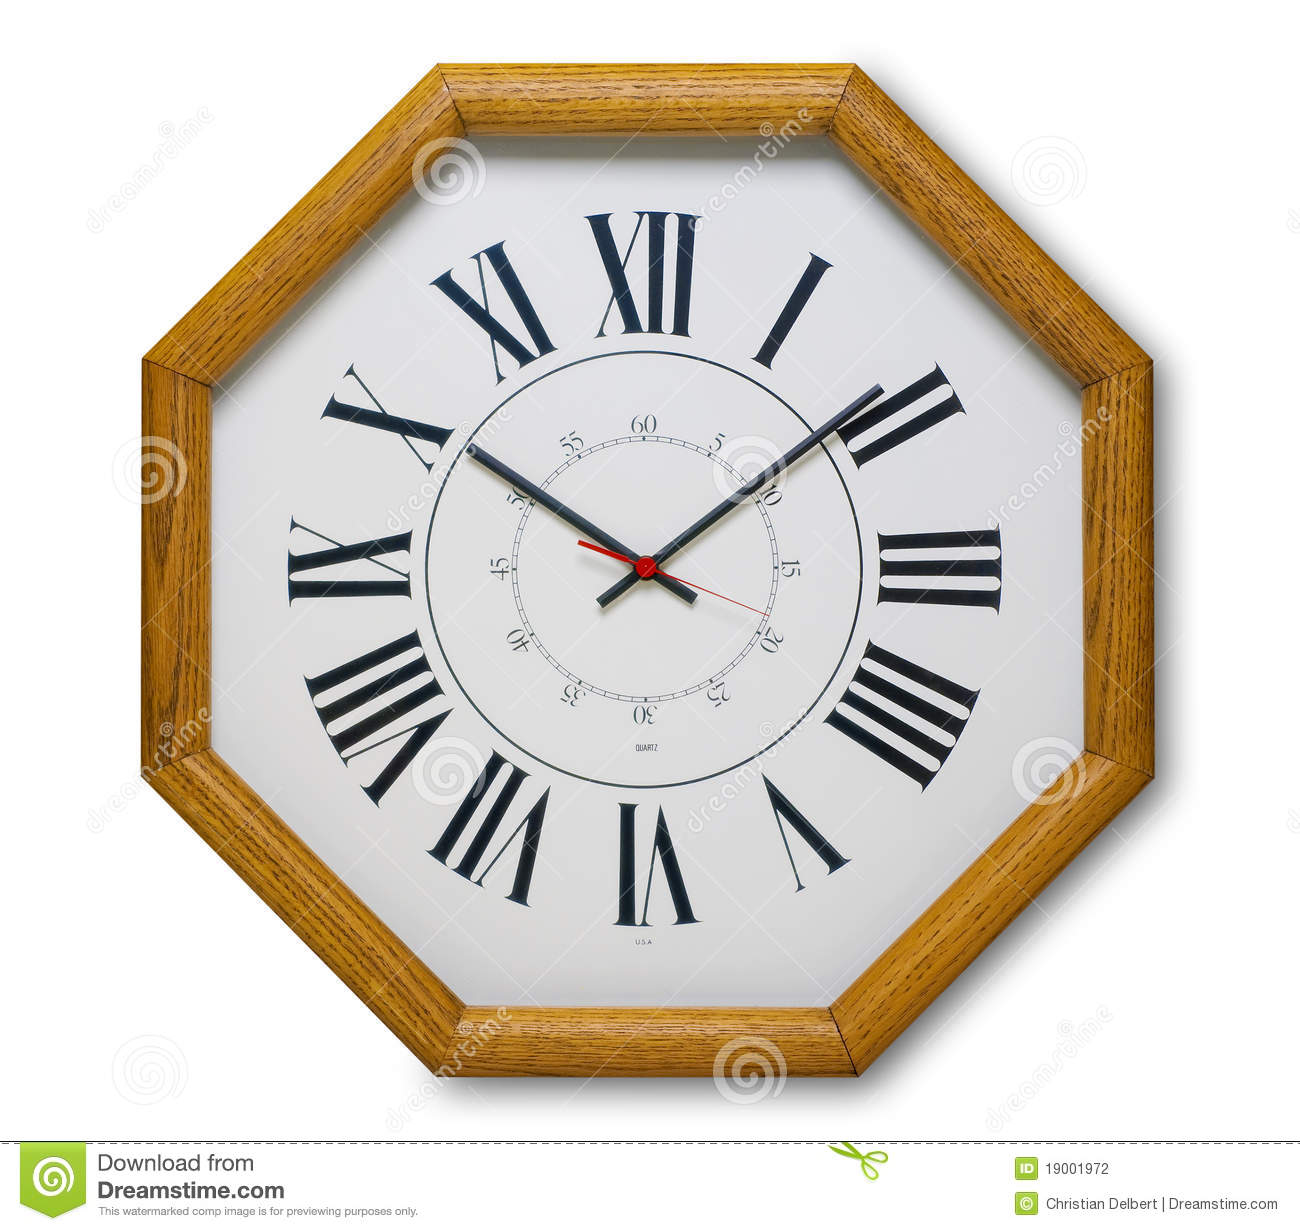 Wall clock in wood stock photo. Image of hour, face, hands ...